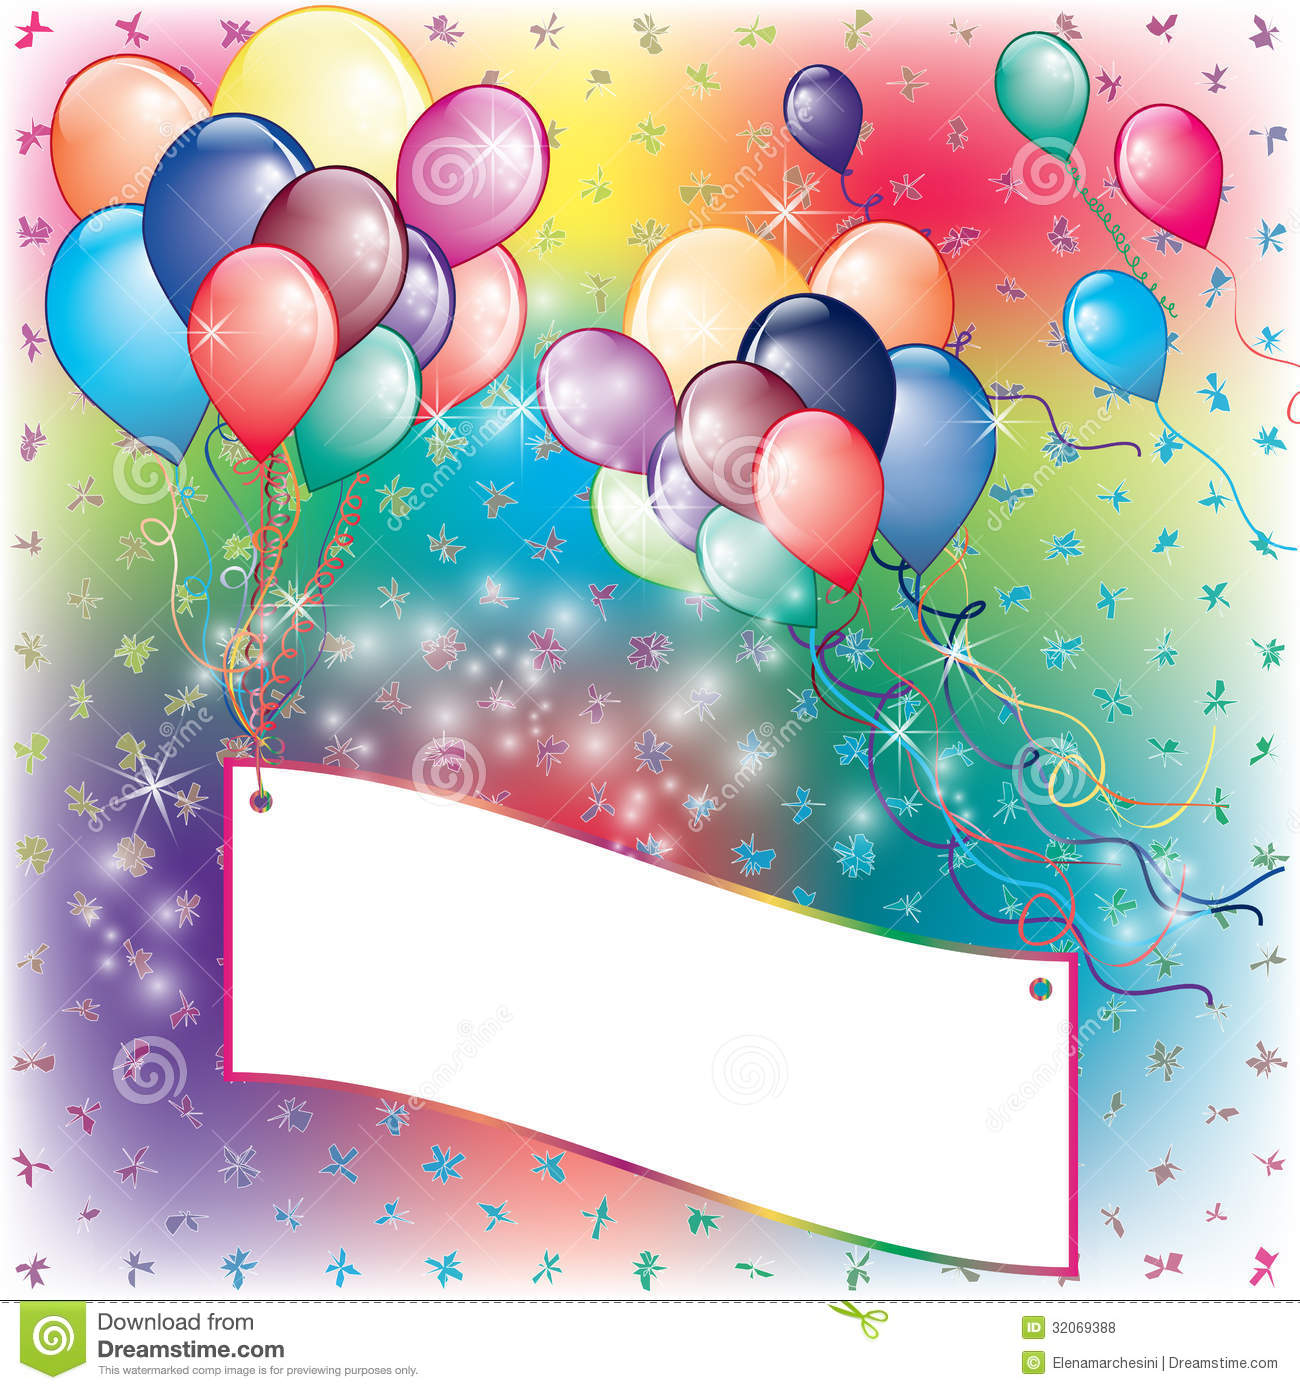 Balloons Party Invitation Card With Falling Board Royalty